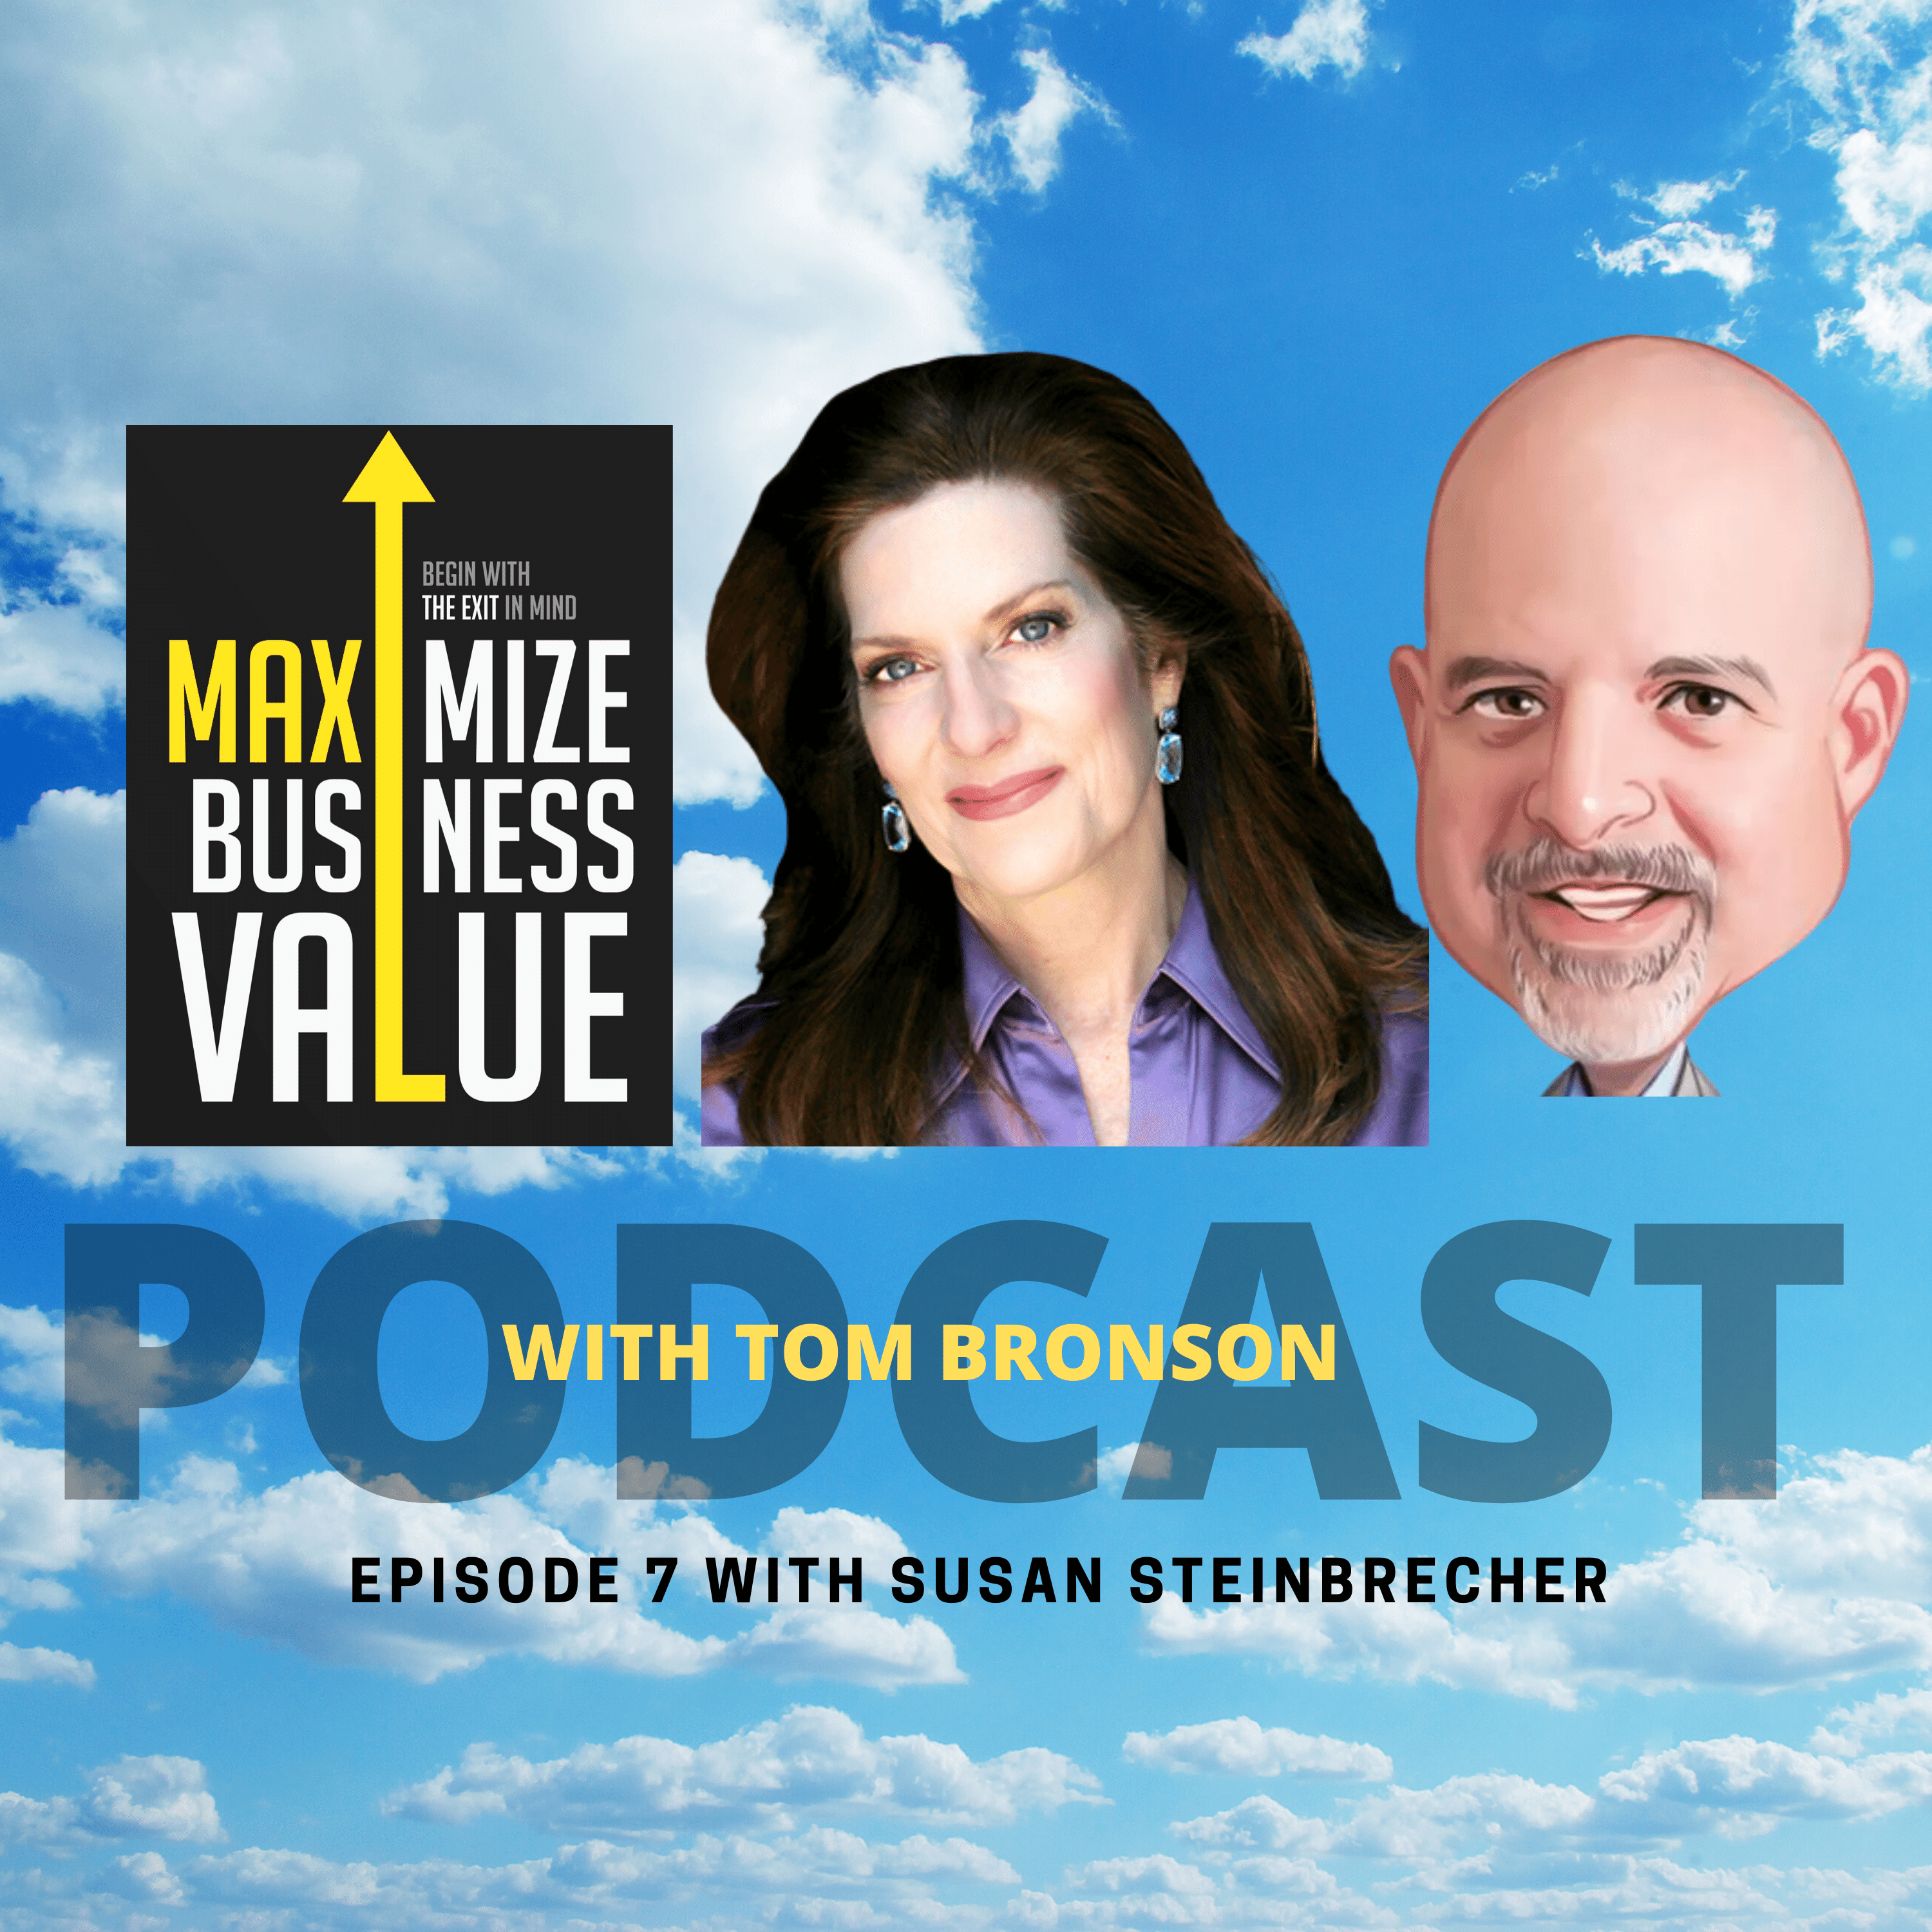 Maximize Business Value Podcast with Susan Steinbrecher